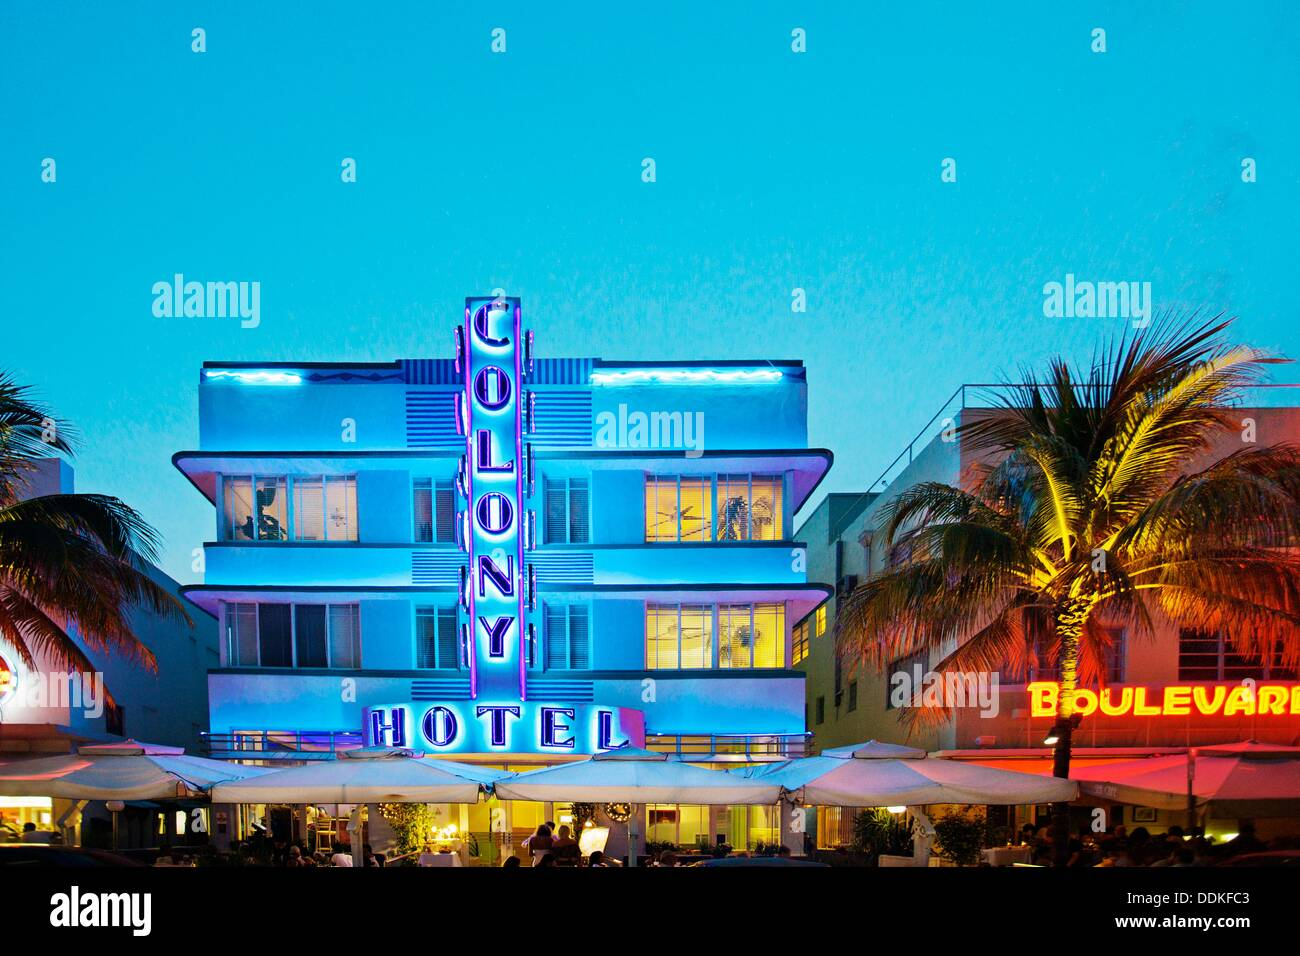 colony hotel ocean drive south beach art deco district miami